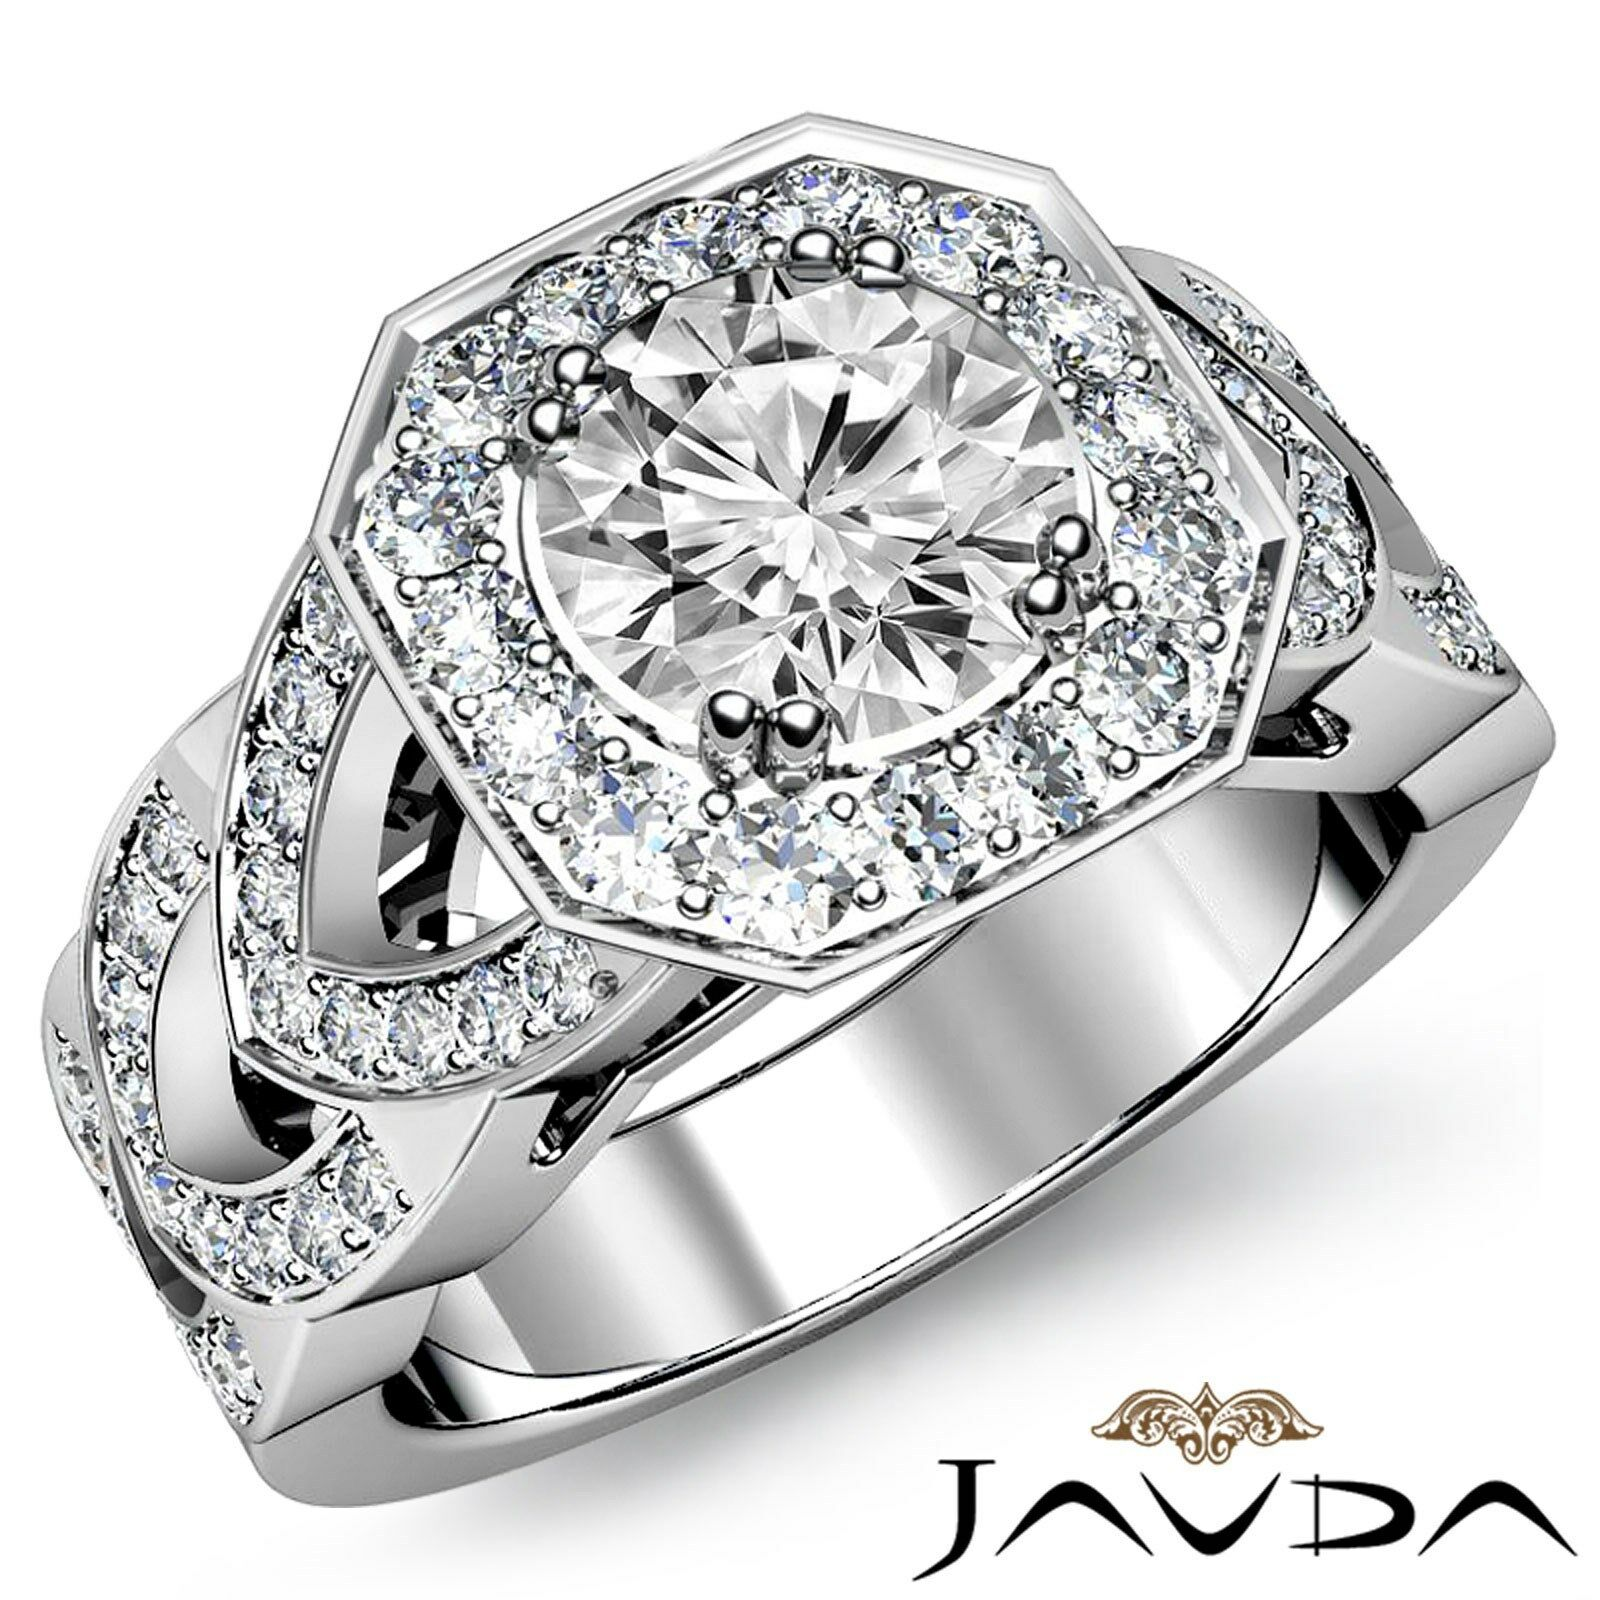 Double Prong Split Shank Halo Round Cut Diamond Engagement Ring GIA G VS2 2.78Ct